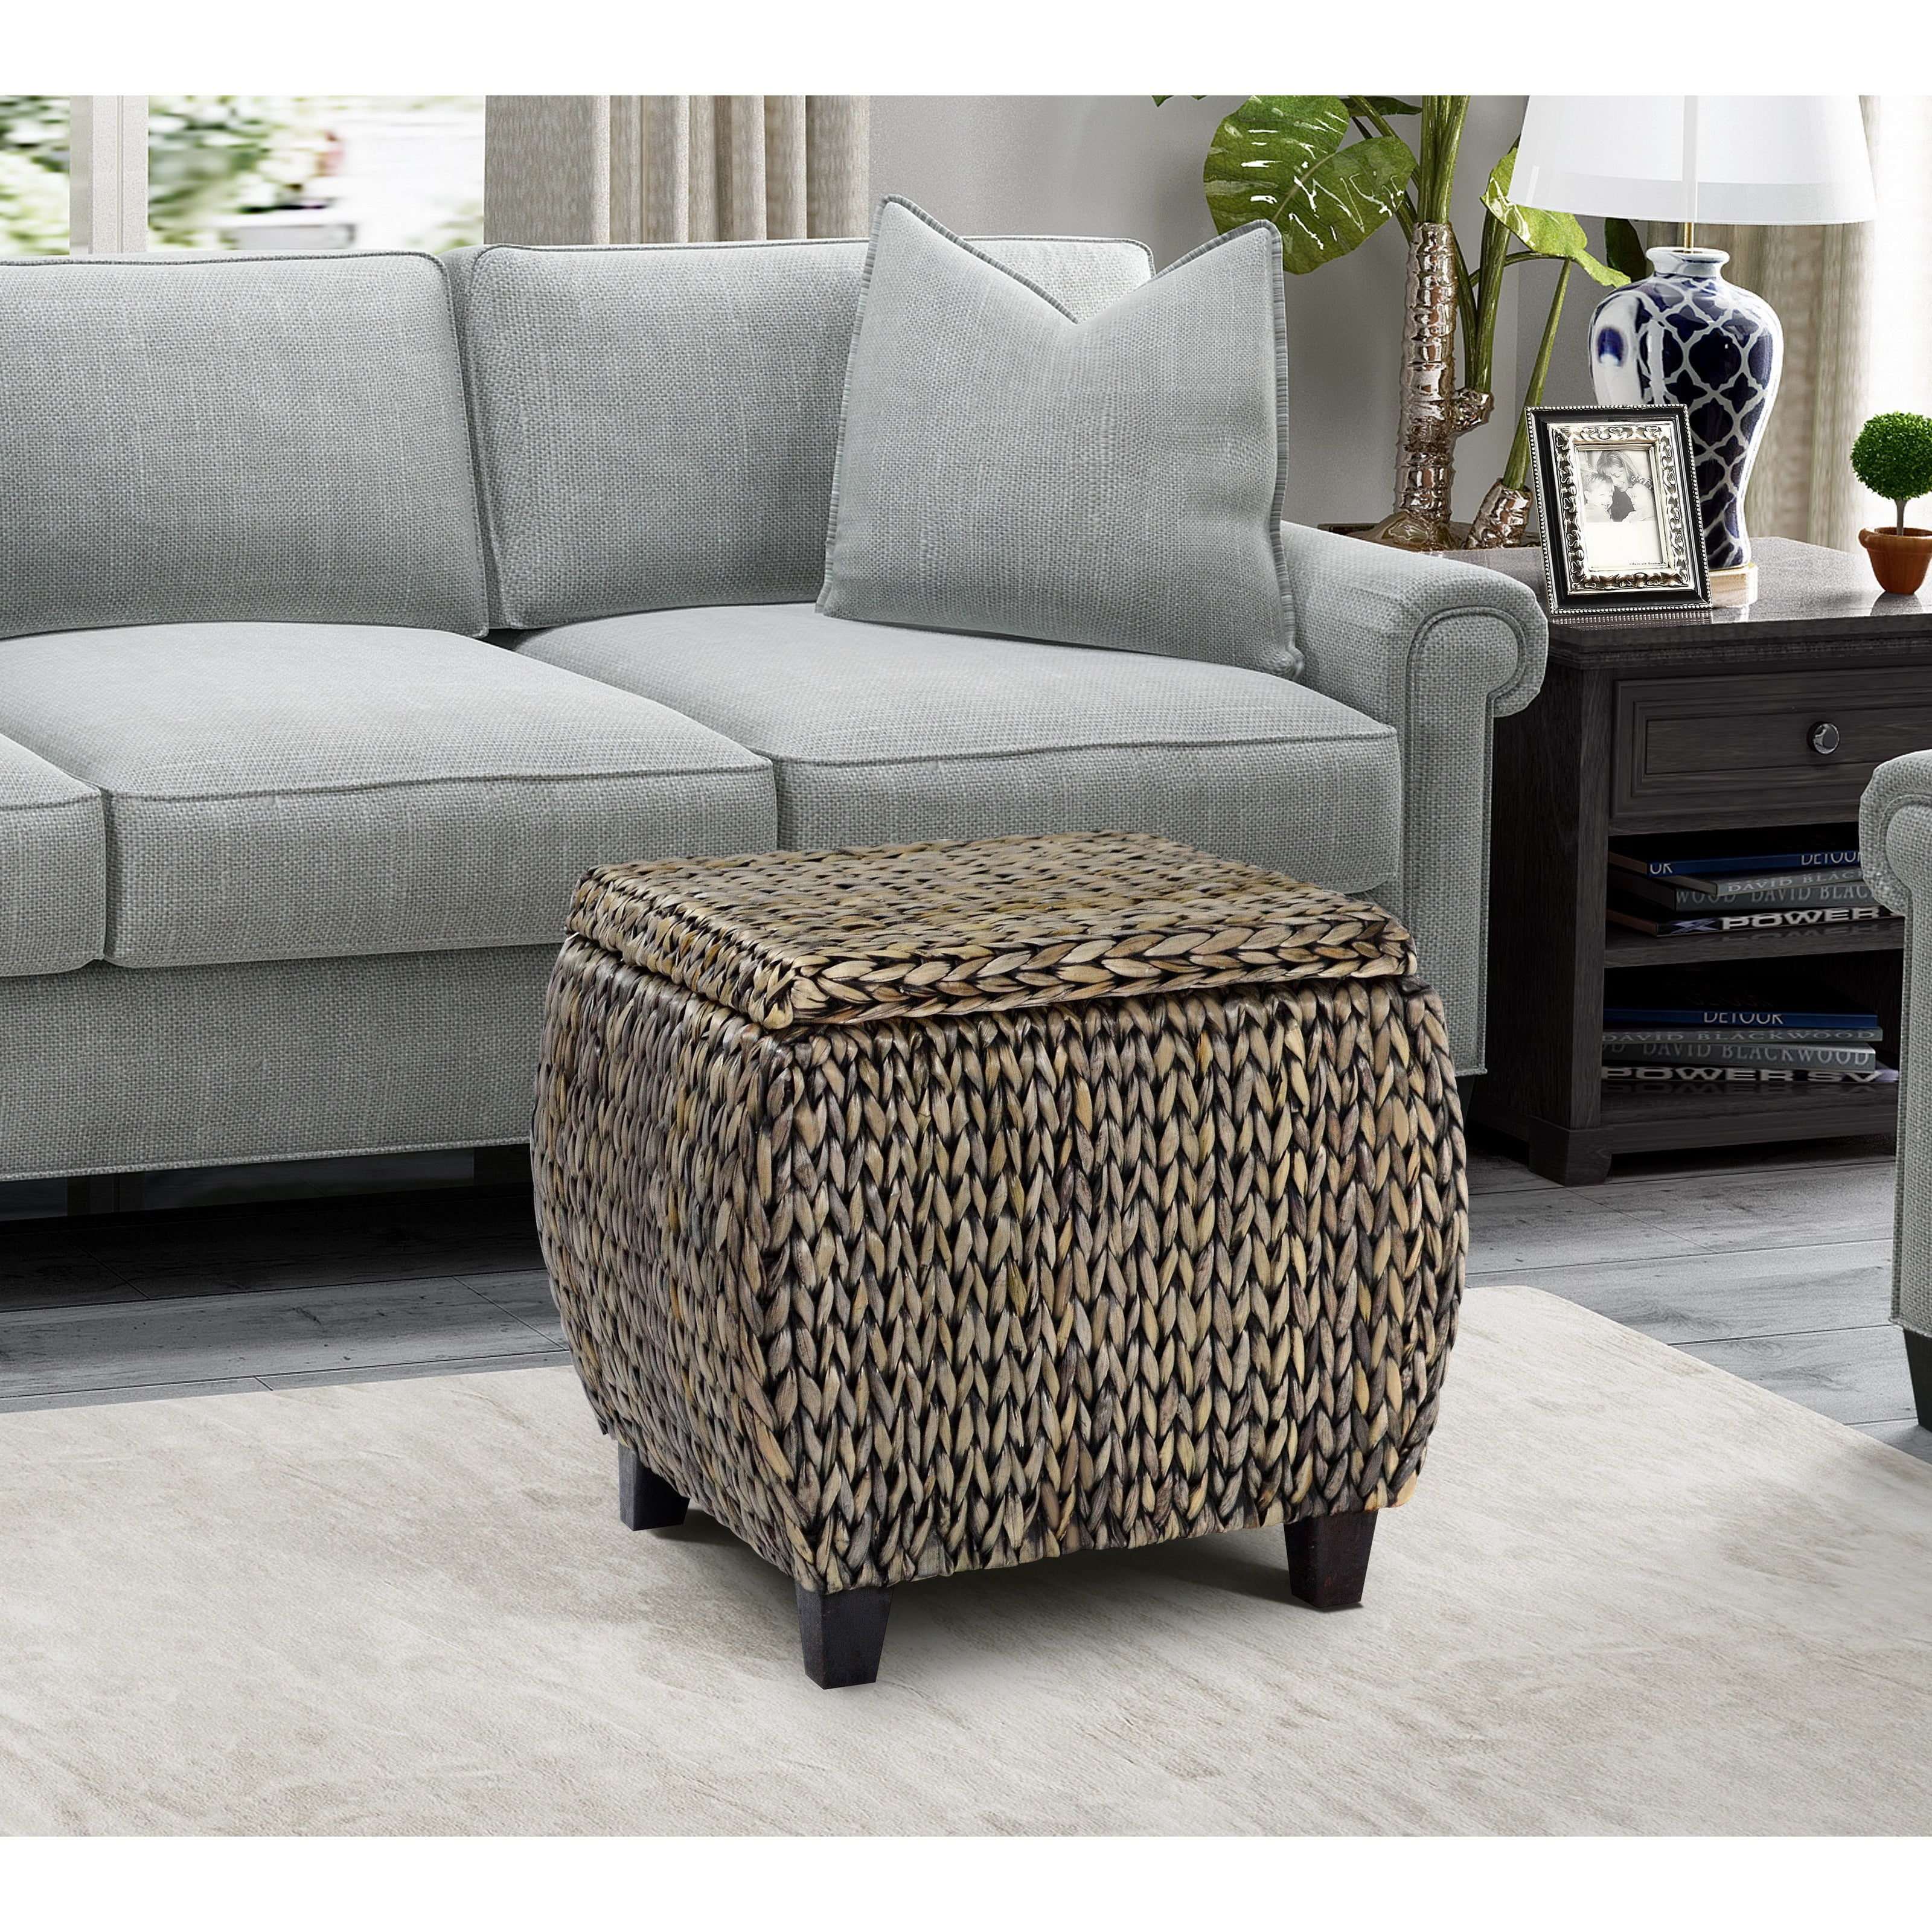 set couch design ikea designs sofas living white size and of full stirring signature ashley room harness chair hutcherson sofa beige setsoverstock by chairs leather overstock brown ottomans pictures